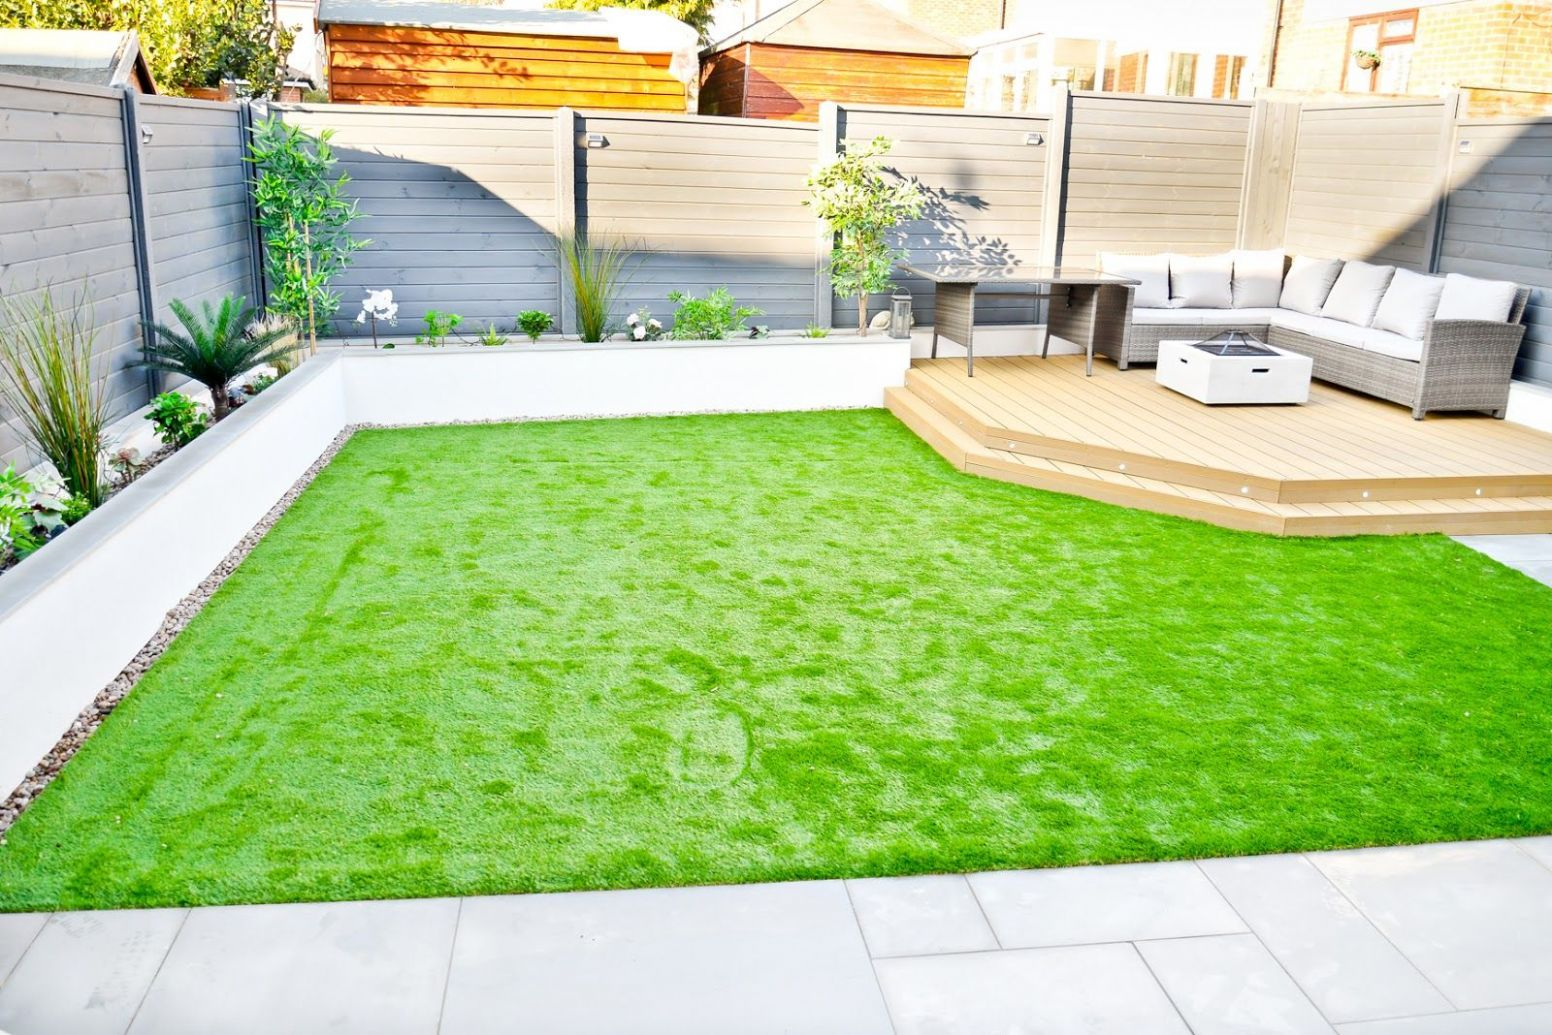 Our Back Garden Makeover - Before & After | Artificial grass ideas ...